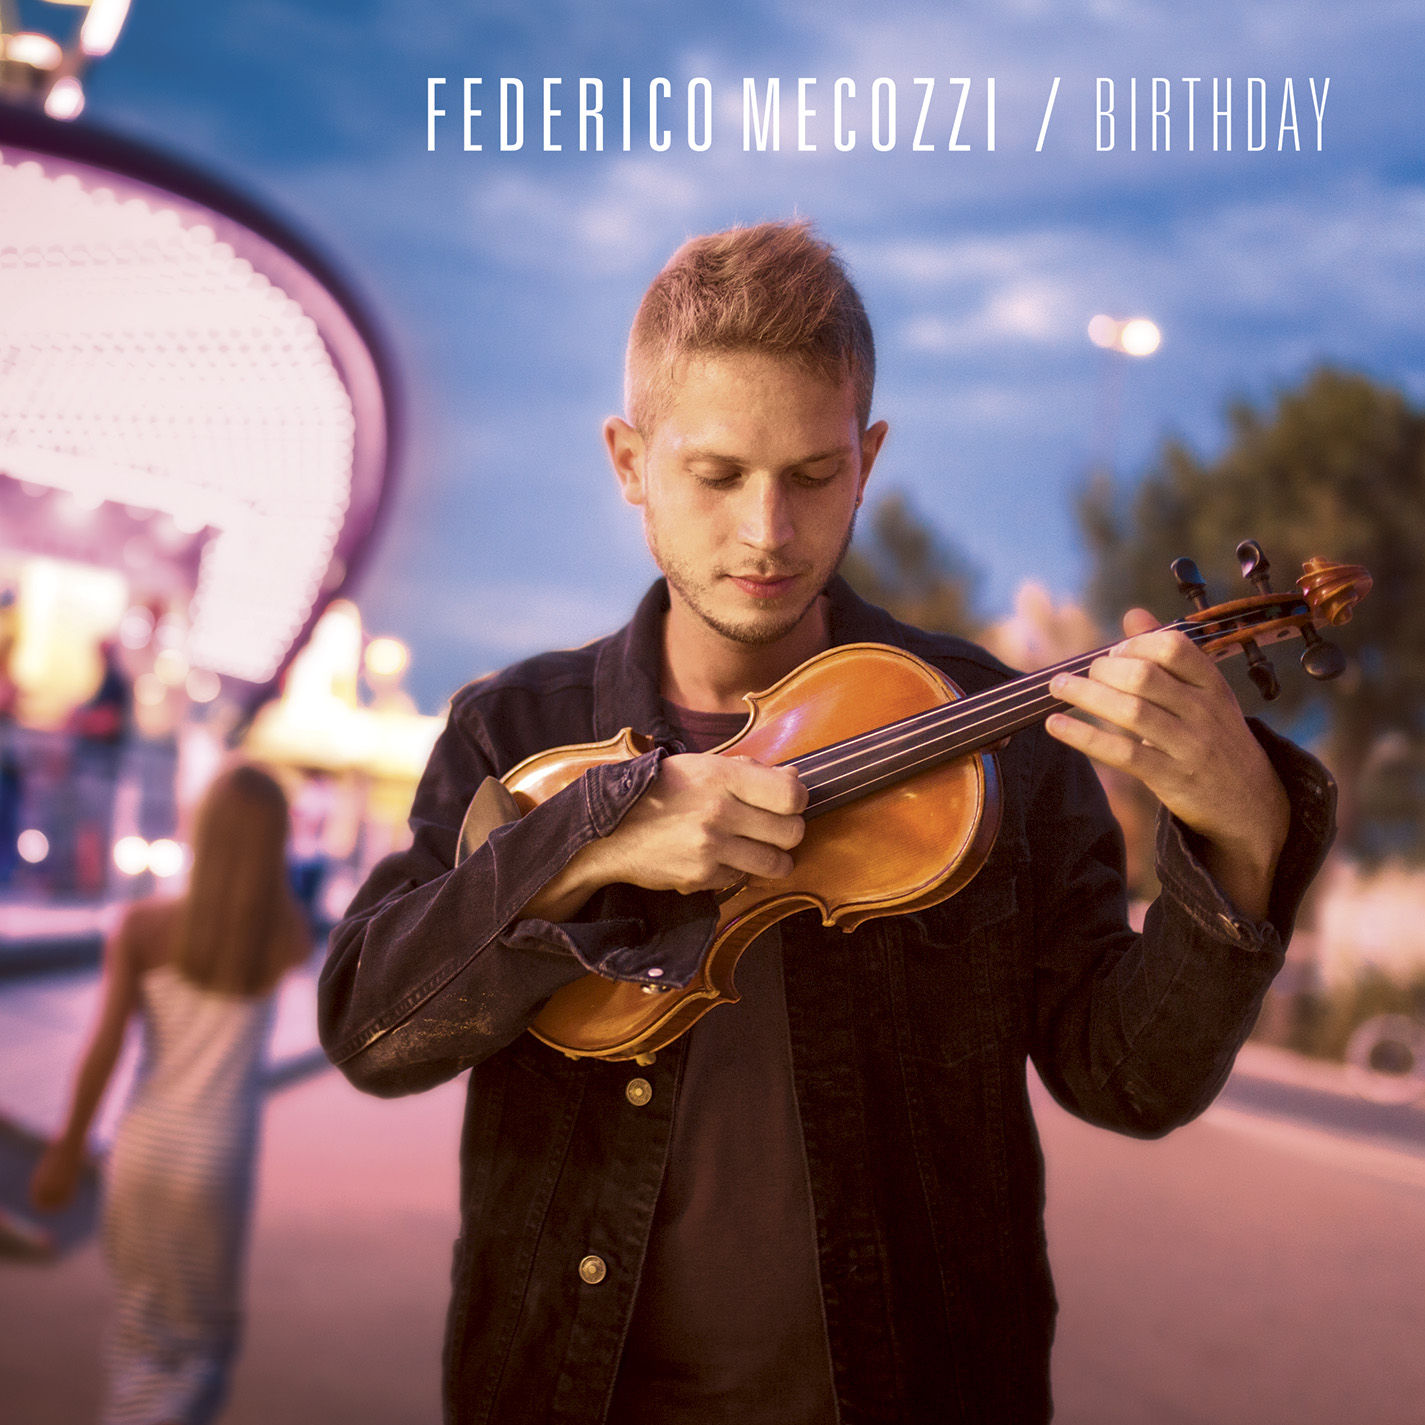 Birthday, new single by Federico Mecozzi